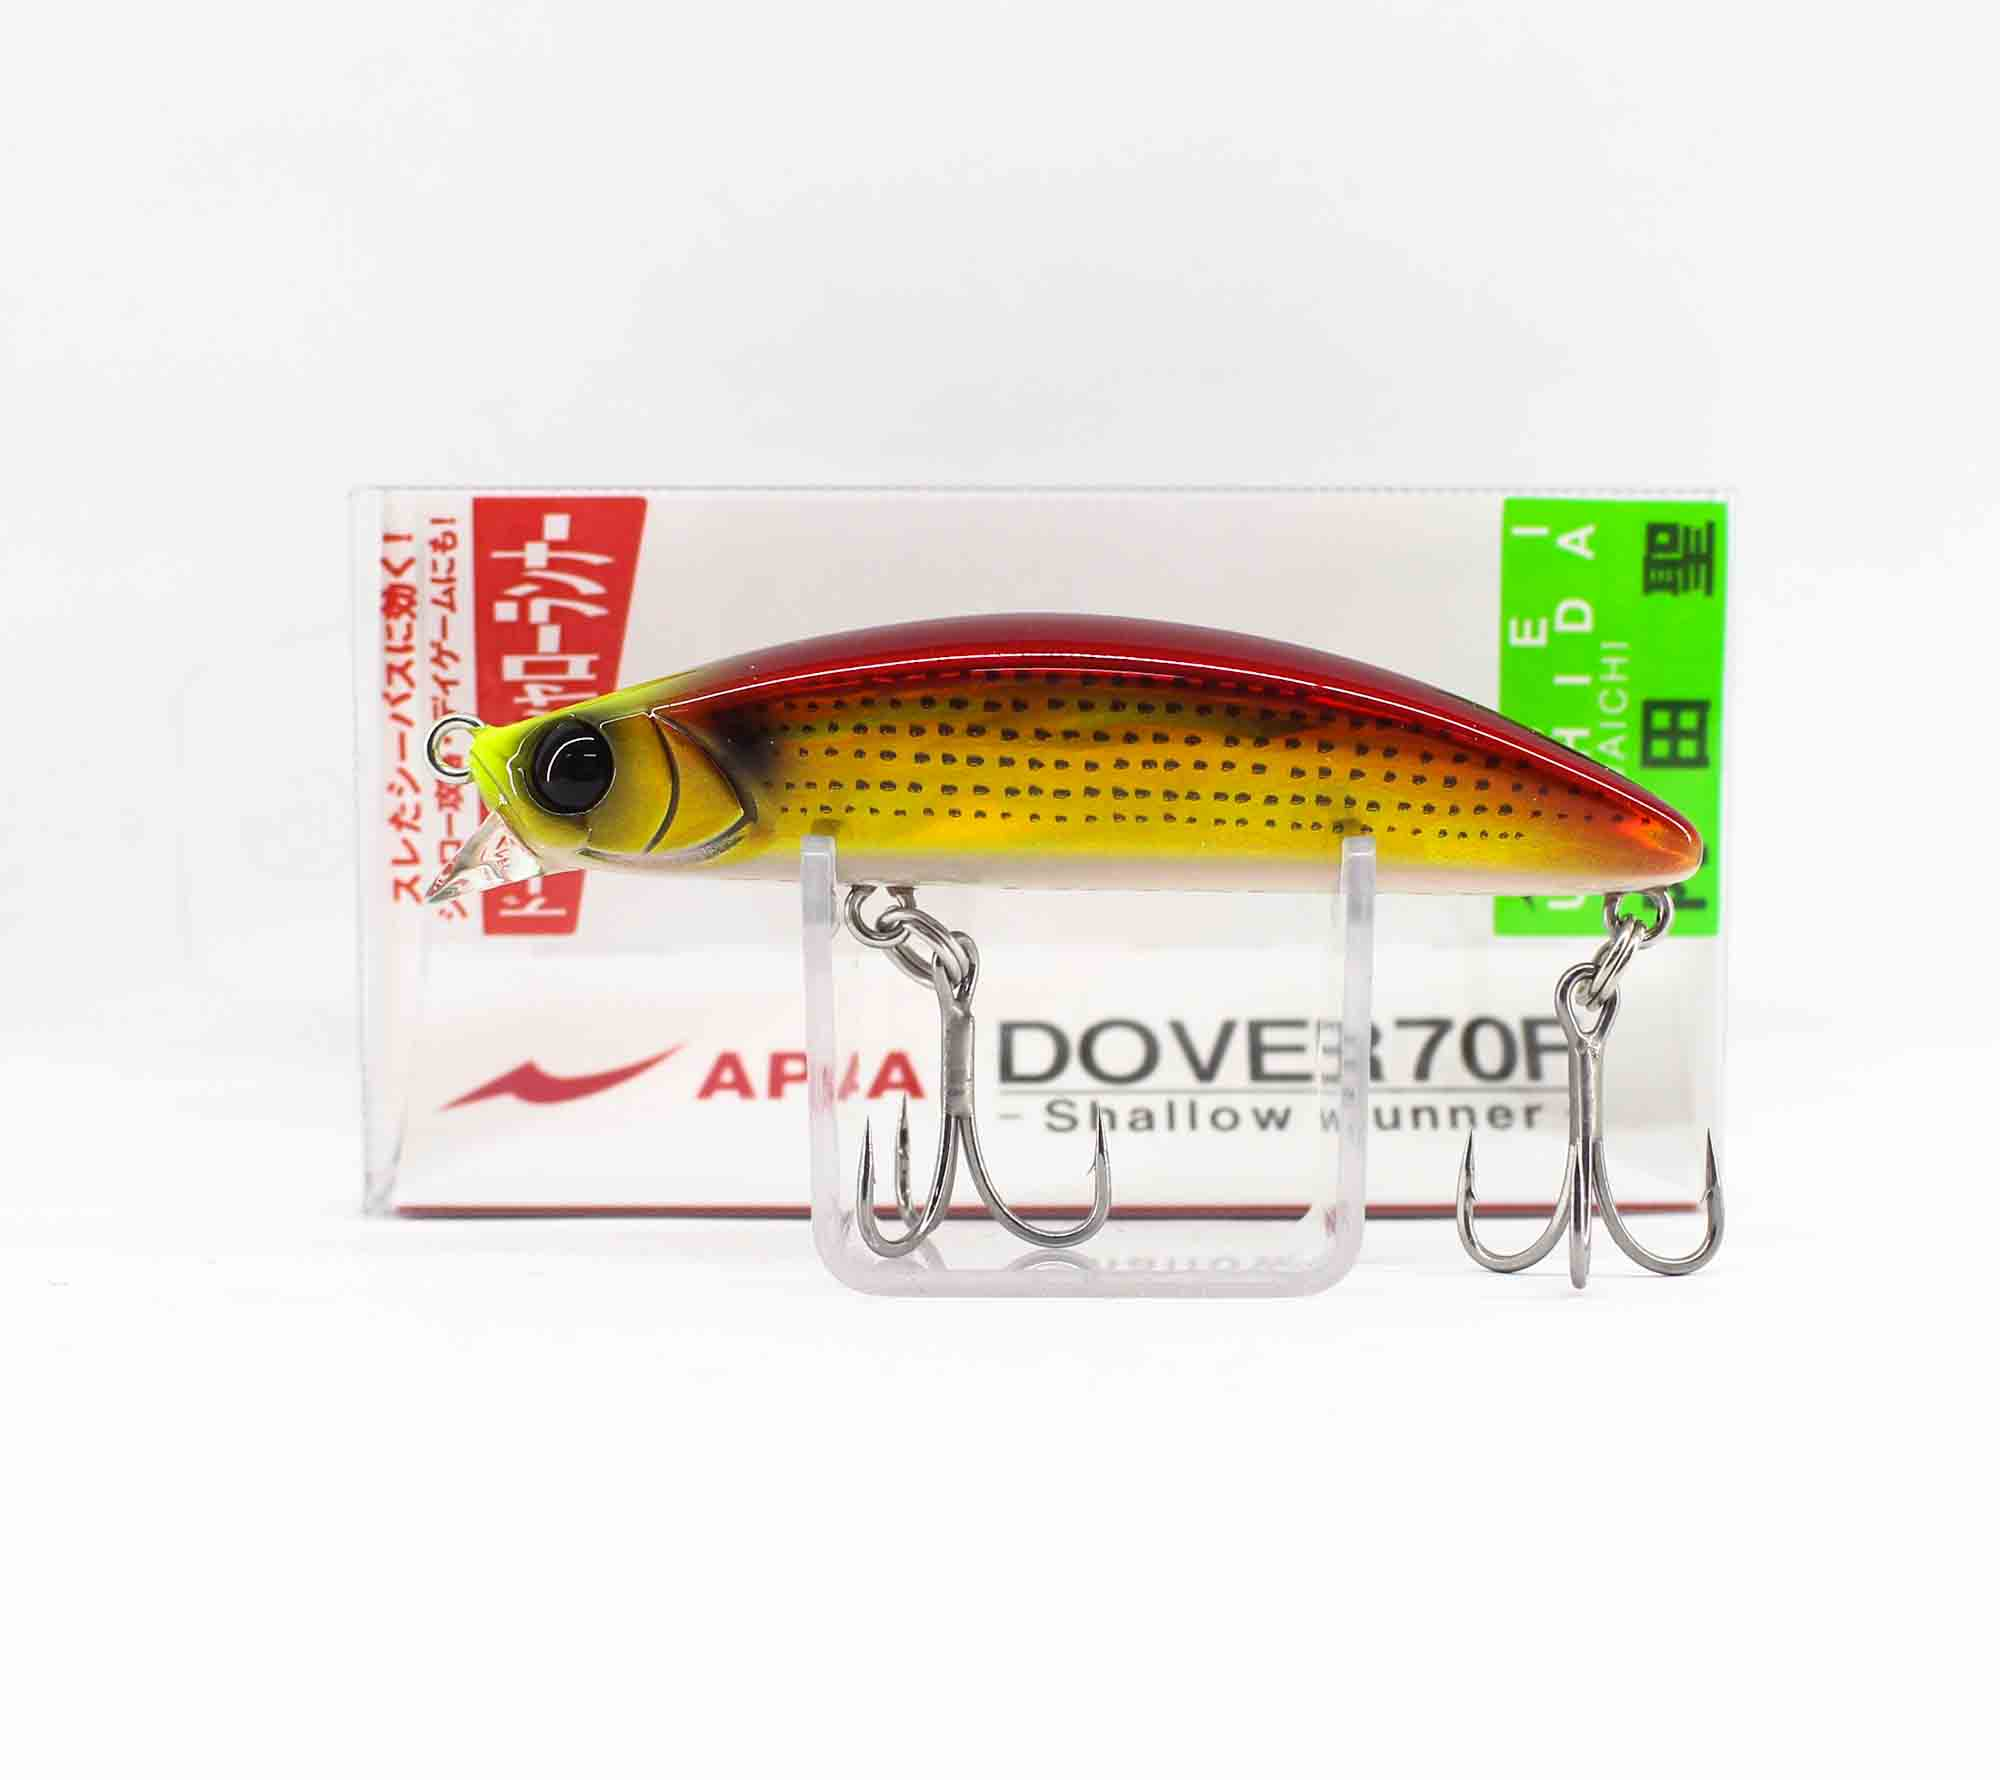 Apia Dover 70 F Floating Lure 01 (8597)